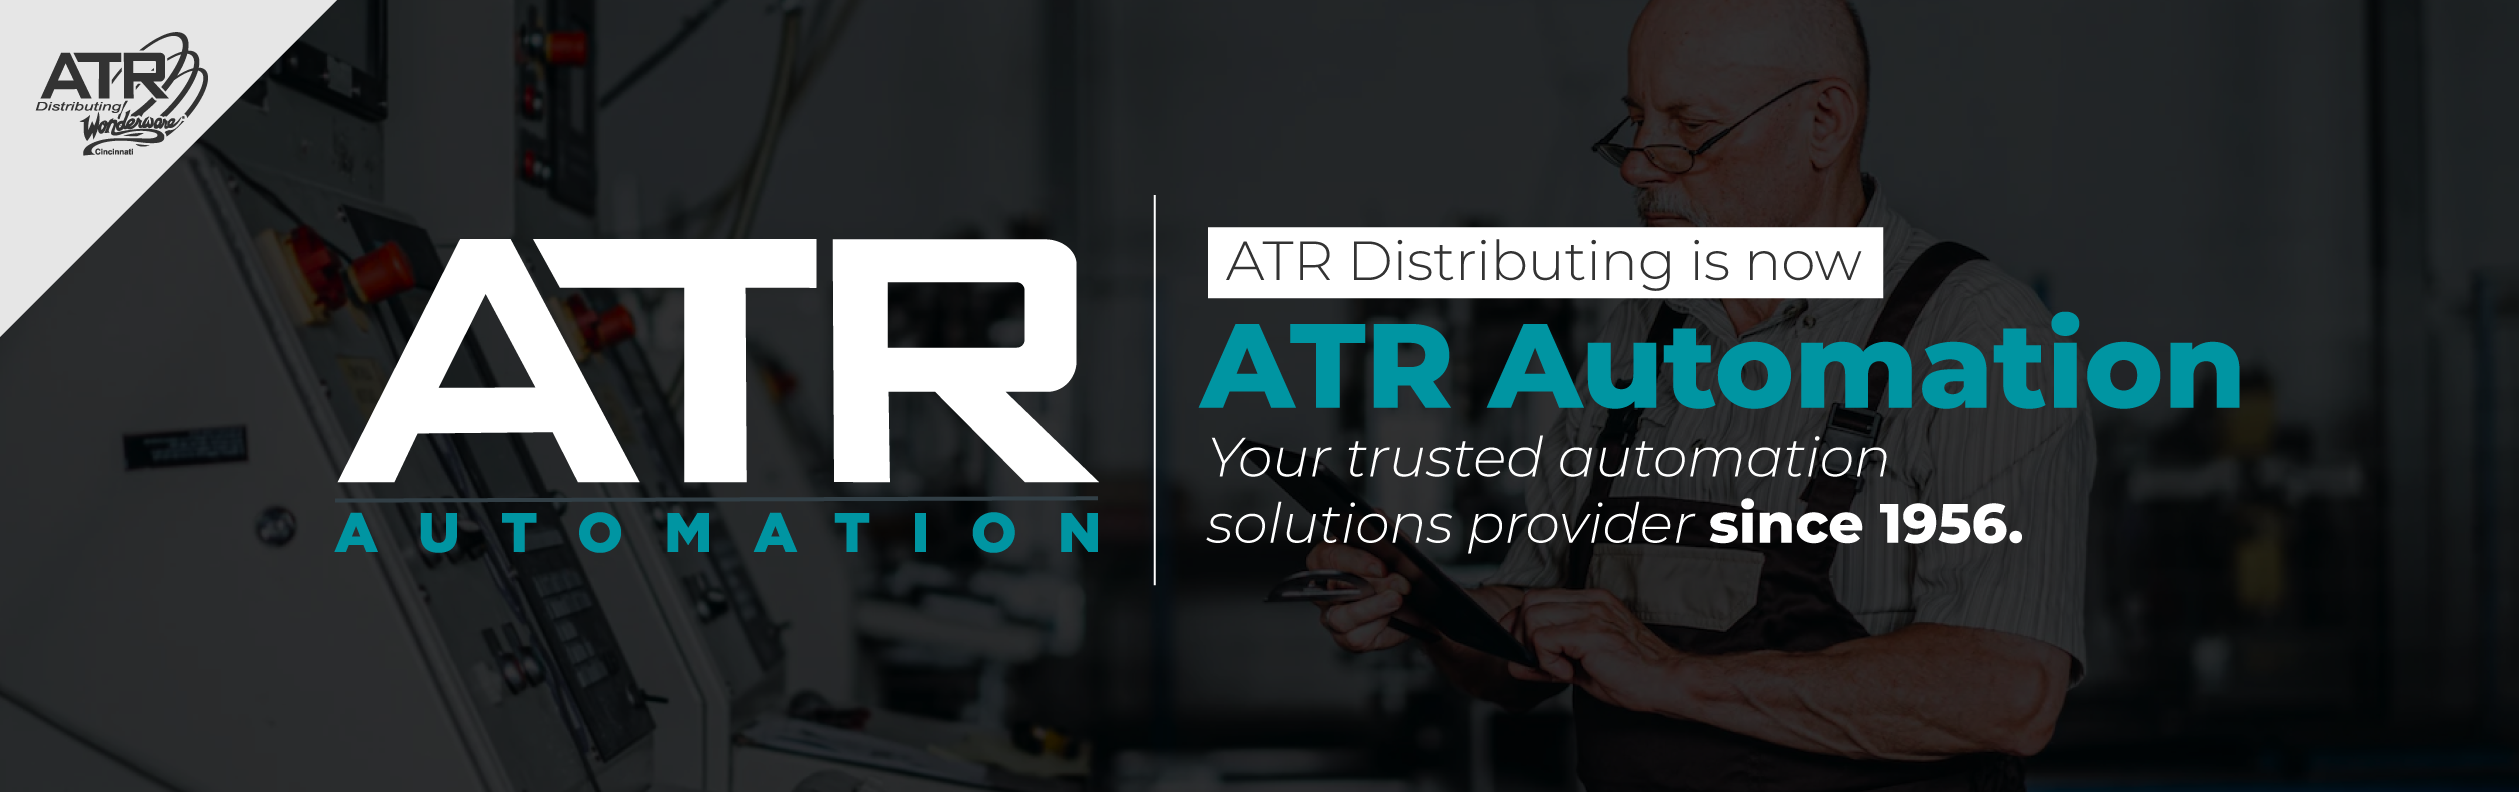 announcing atr automation